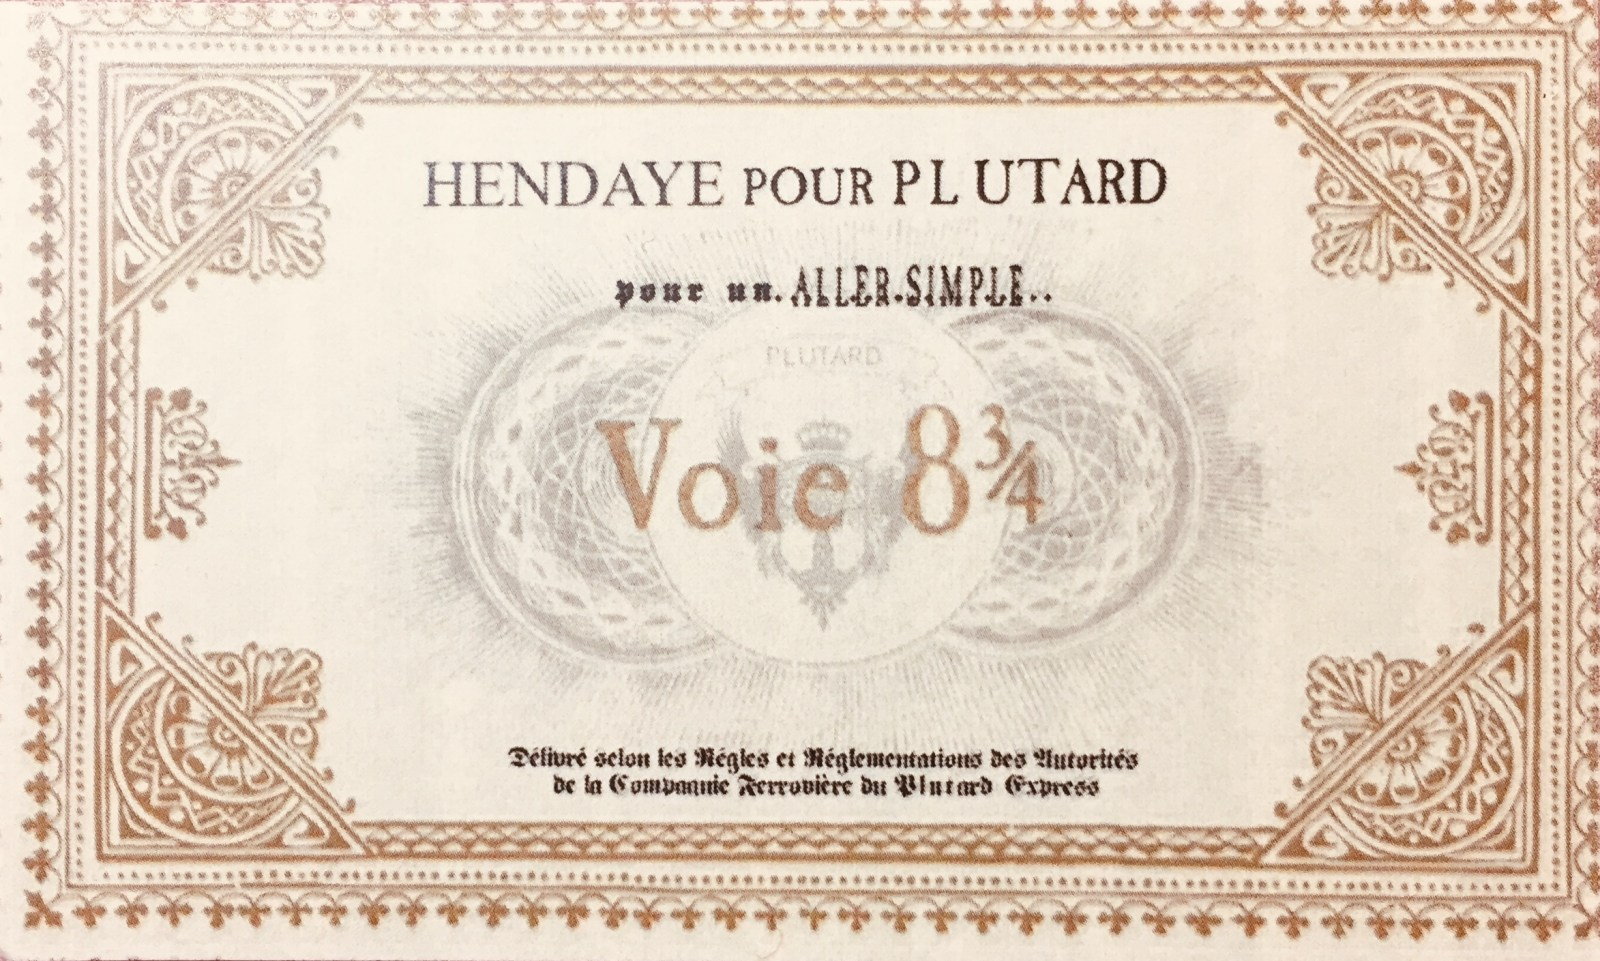 Ticket pour Plutard, via le quai 8 3/4 - Murder Party Harry Potter à la médiathèque de Hendaye